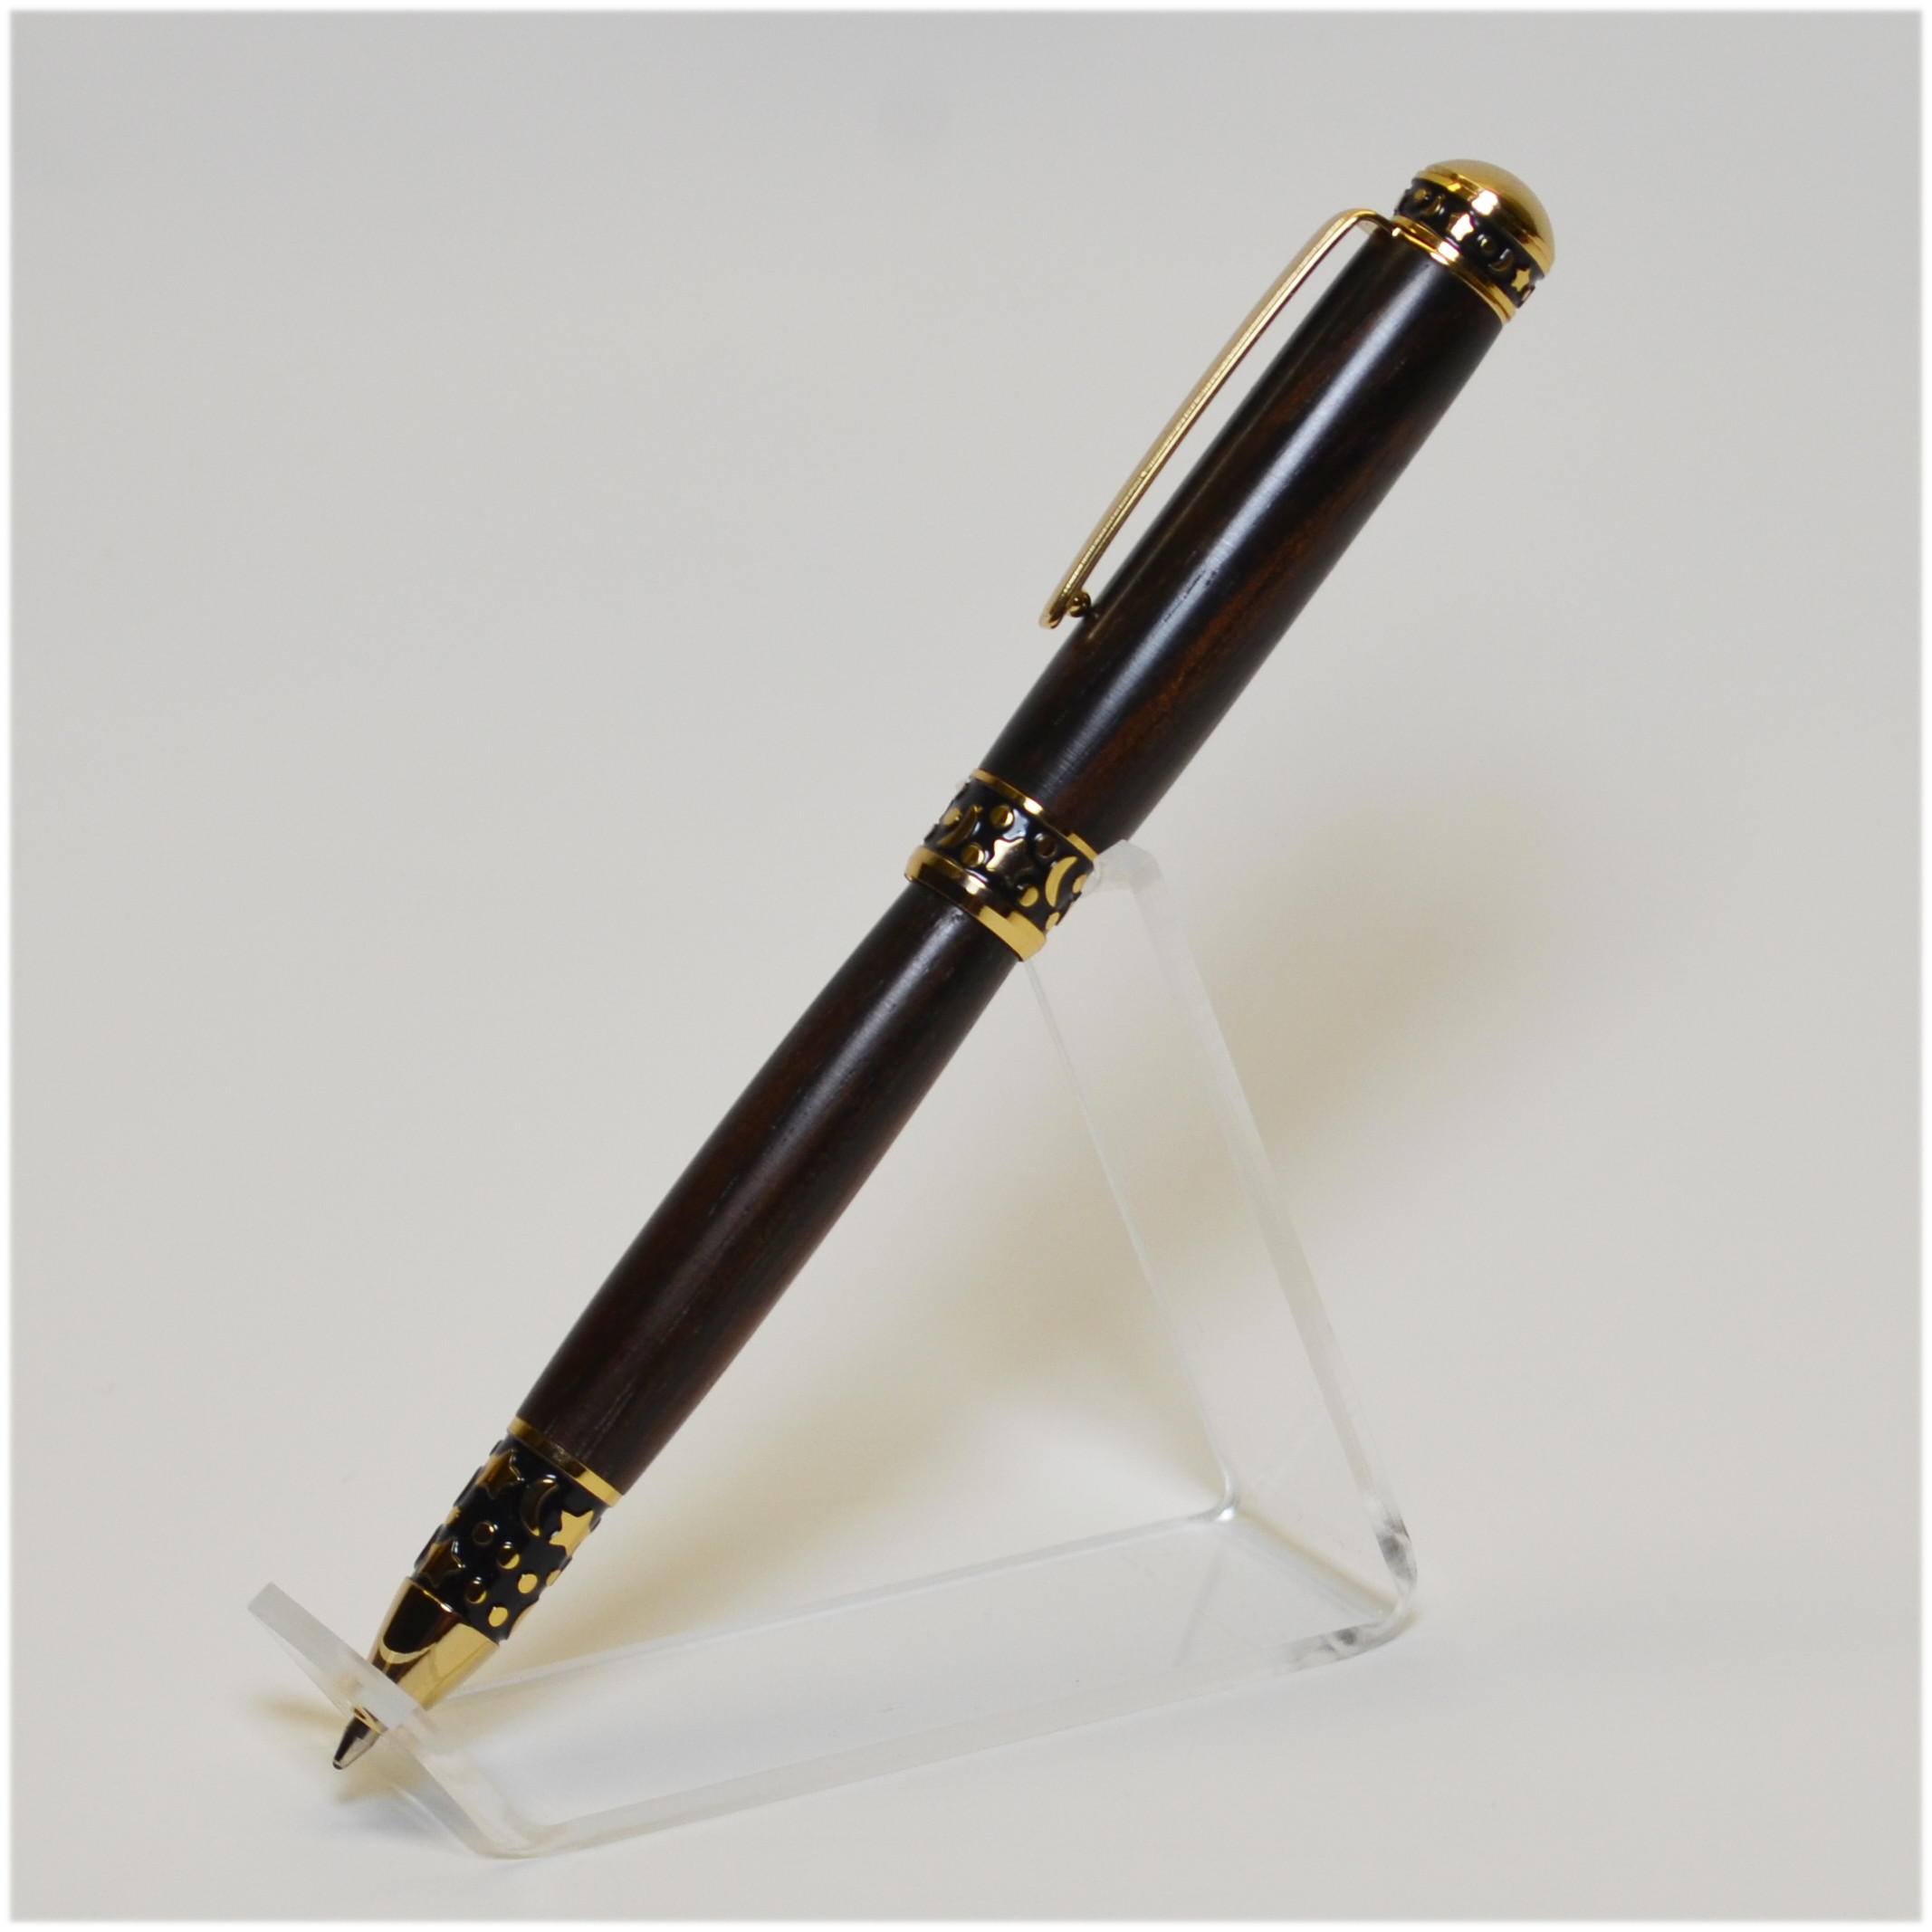 Sculpted Rosewood Pen